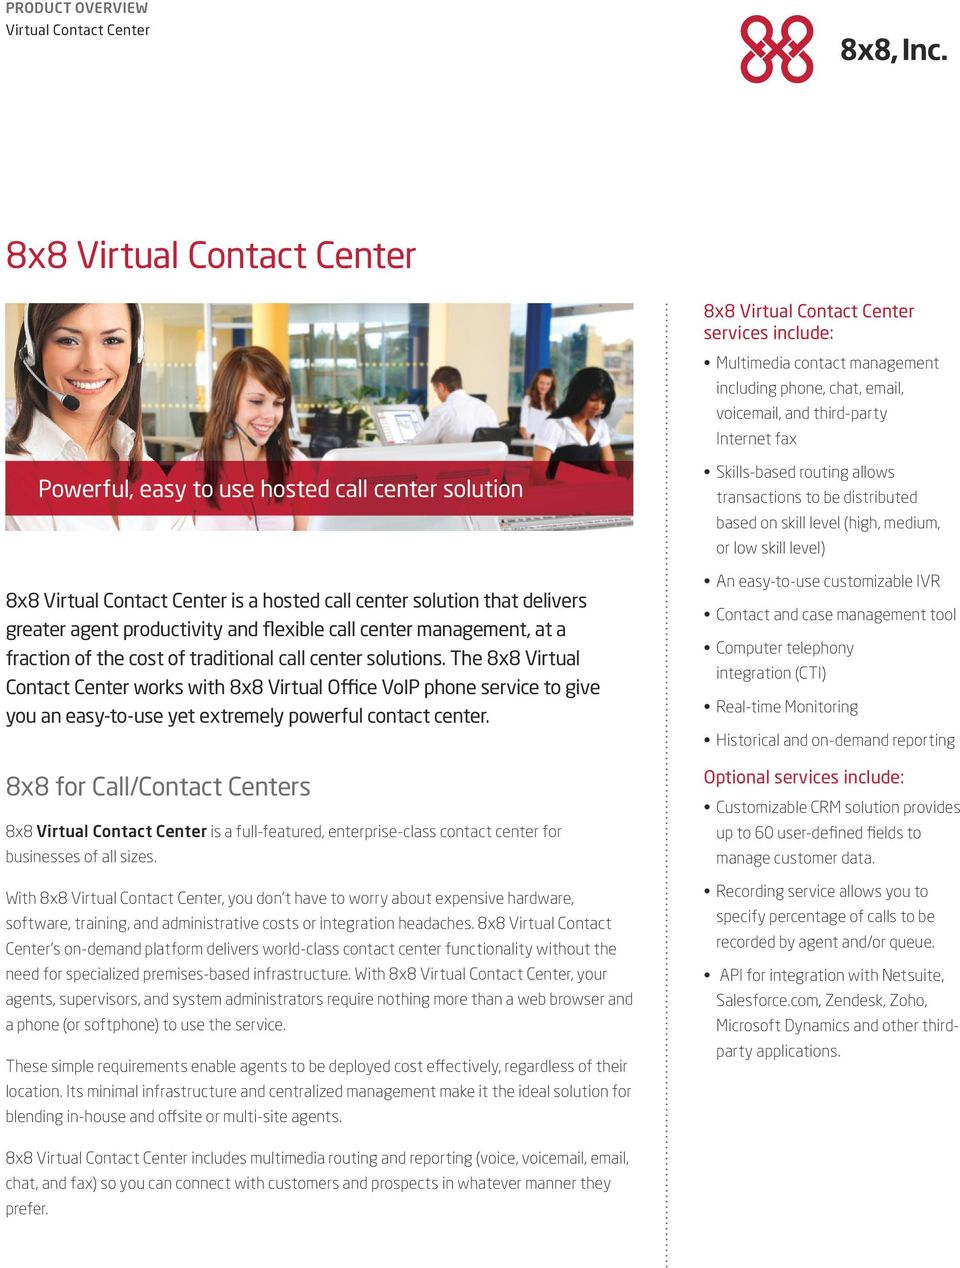 The 8x8 Virtual Contact Center works with 8x8 Virtual Office VoIP phone service to give you an easy-to-use yet extremely powerful contact center.